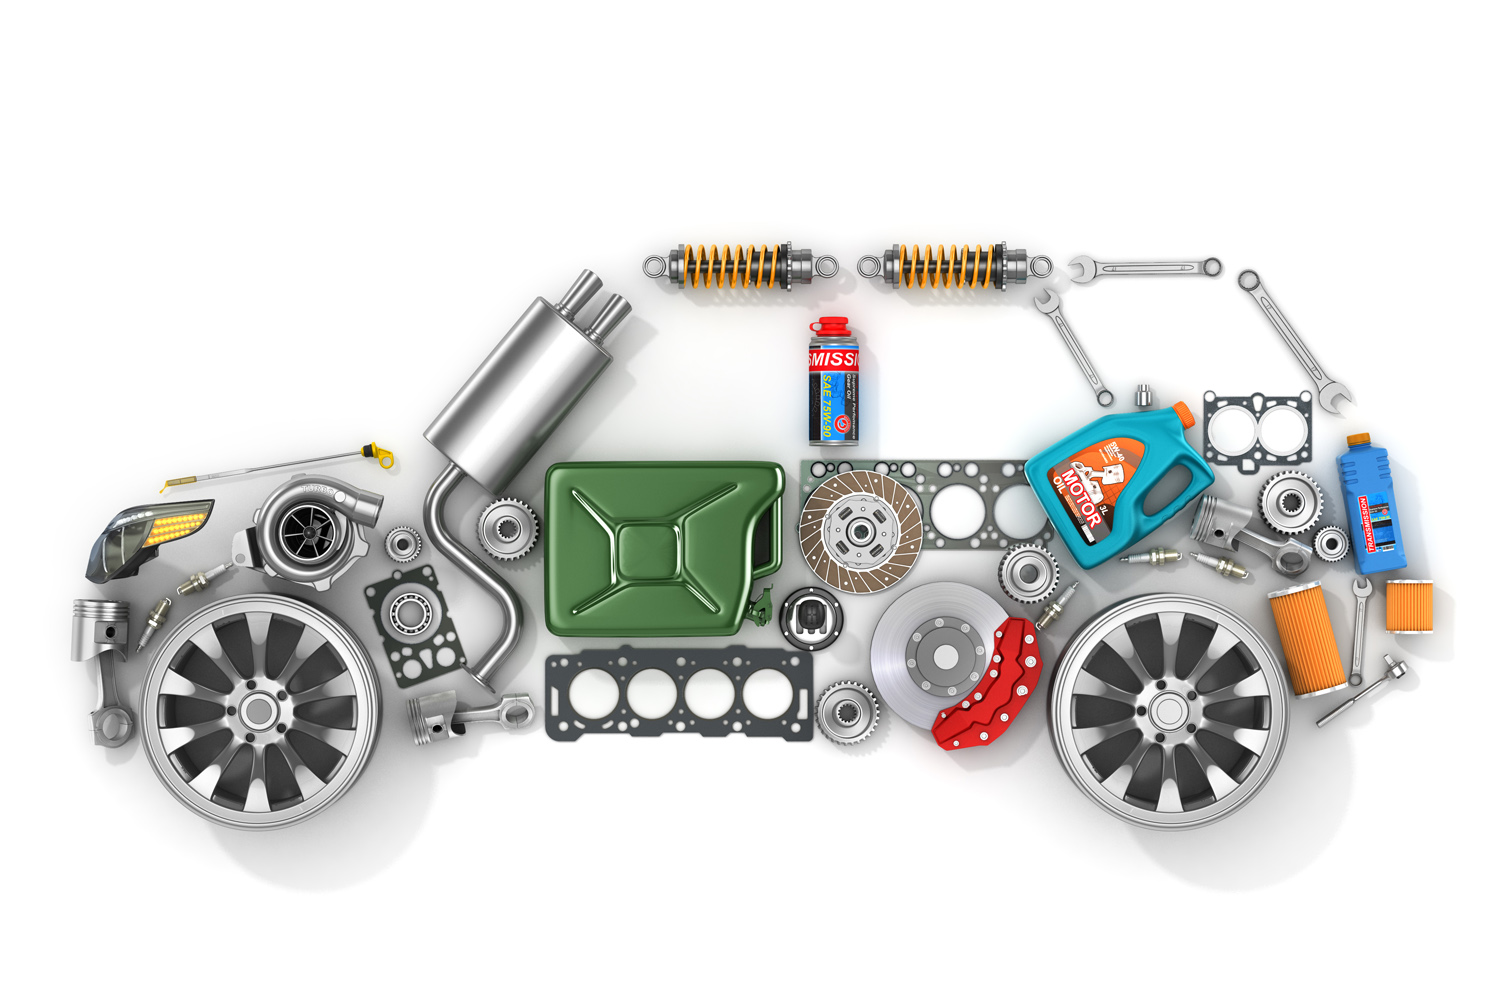 Car parts - If you need parts for your car we're happy for you to have them delivered to Bonnes Routes in advance of your arrival or during your stay, and will also help you source them in an emergency. Many common parts can be delivered within 48 hours from a variety of online sources. We also have one of only two Millers Oils distributors in France just up the road!